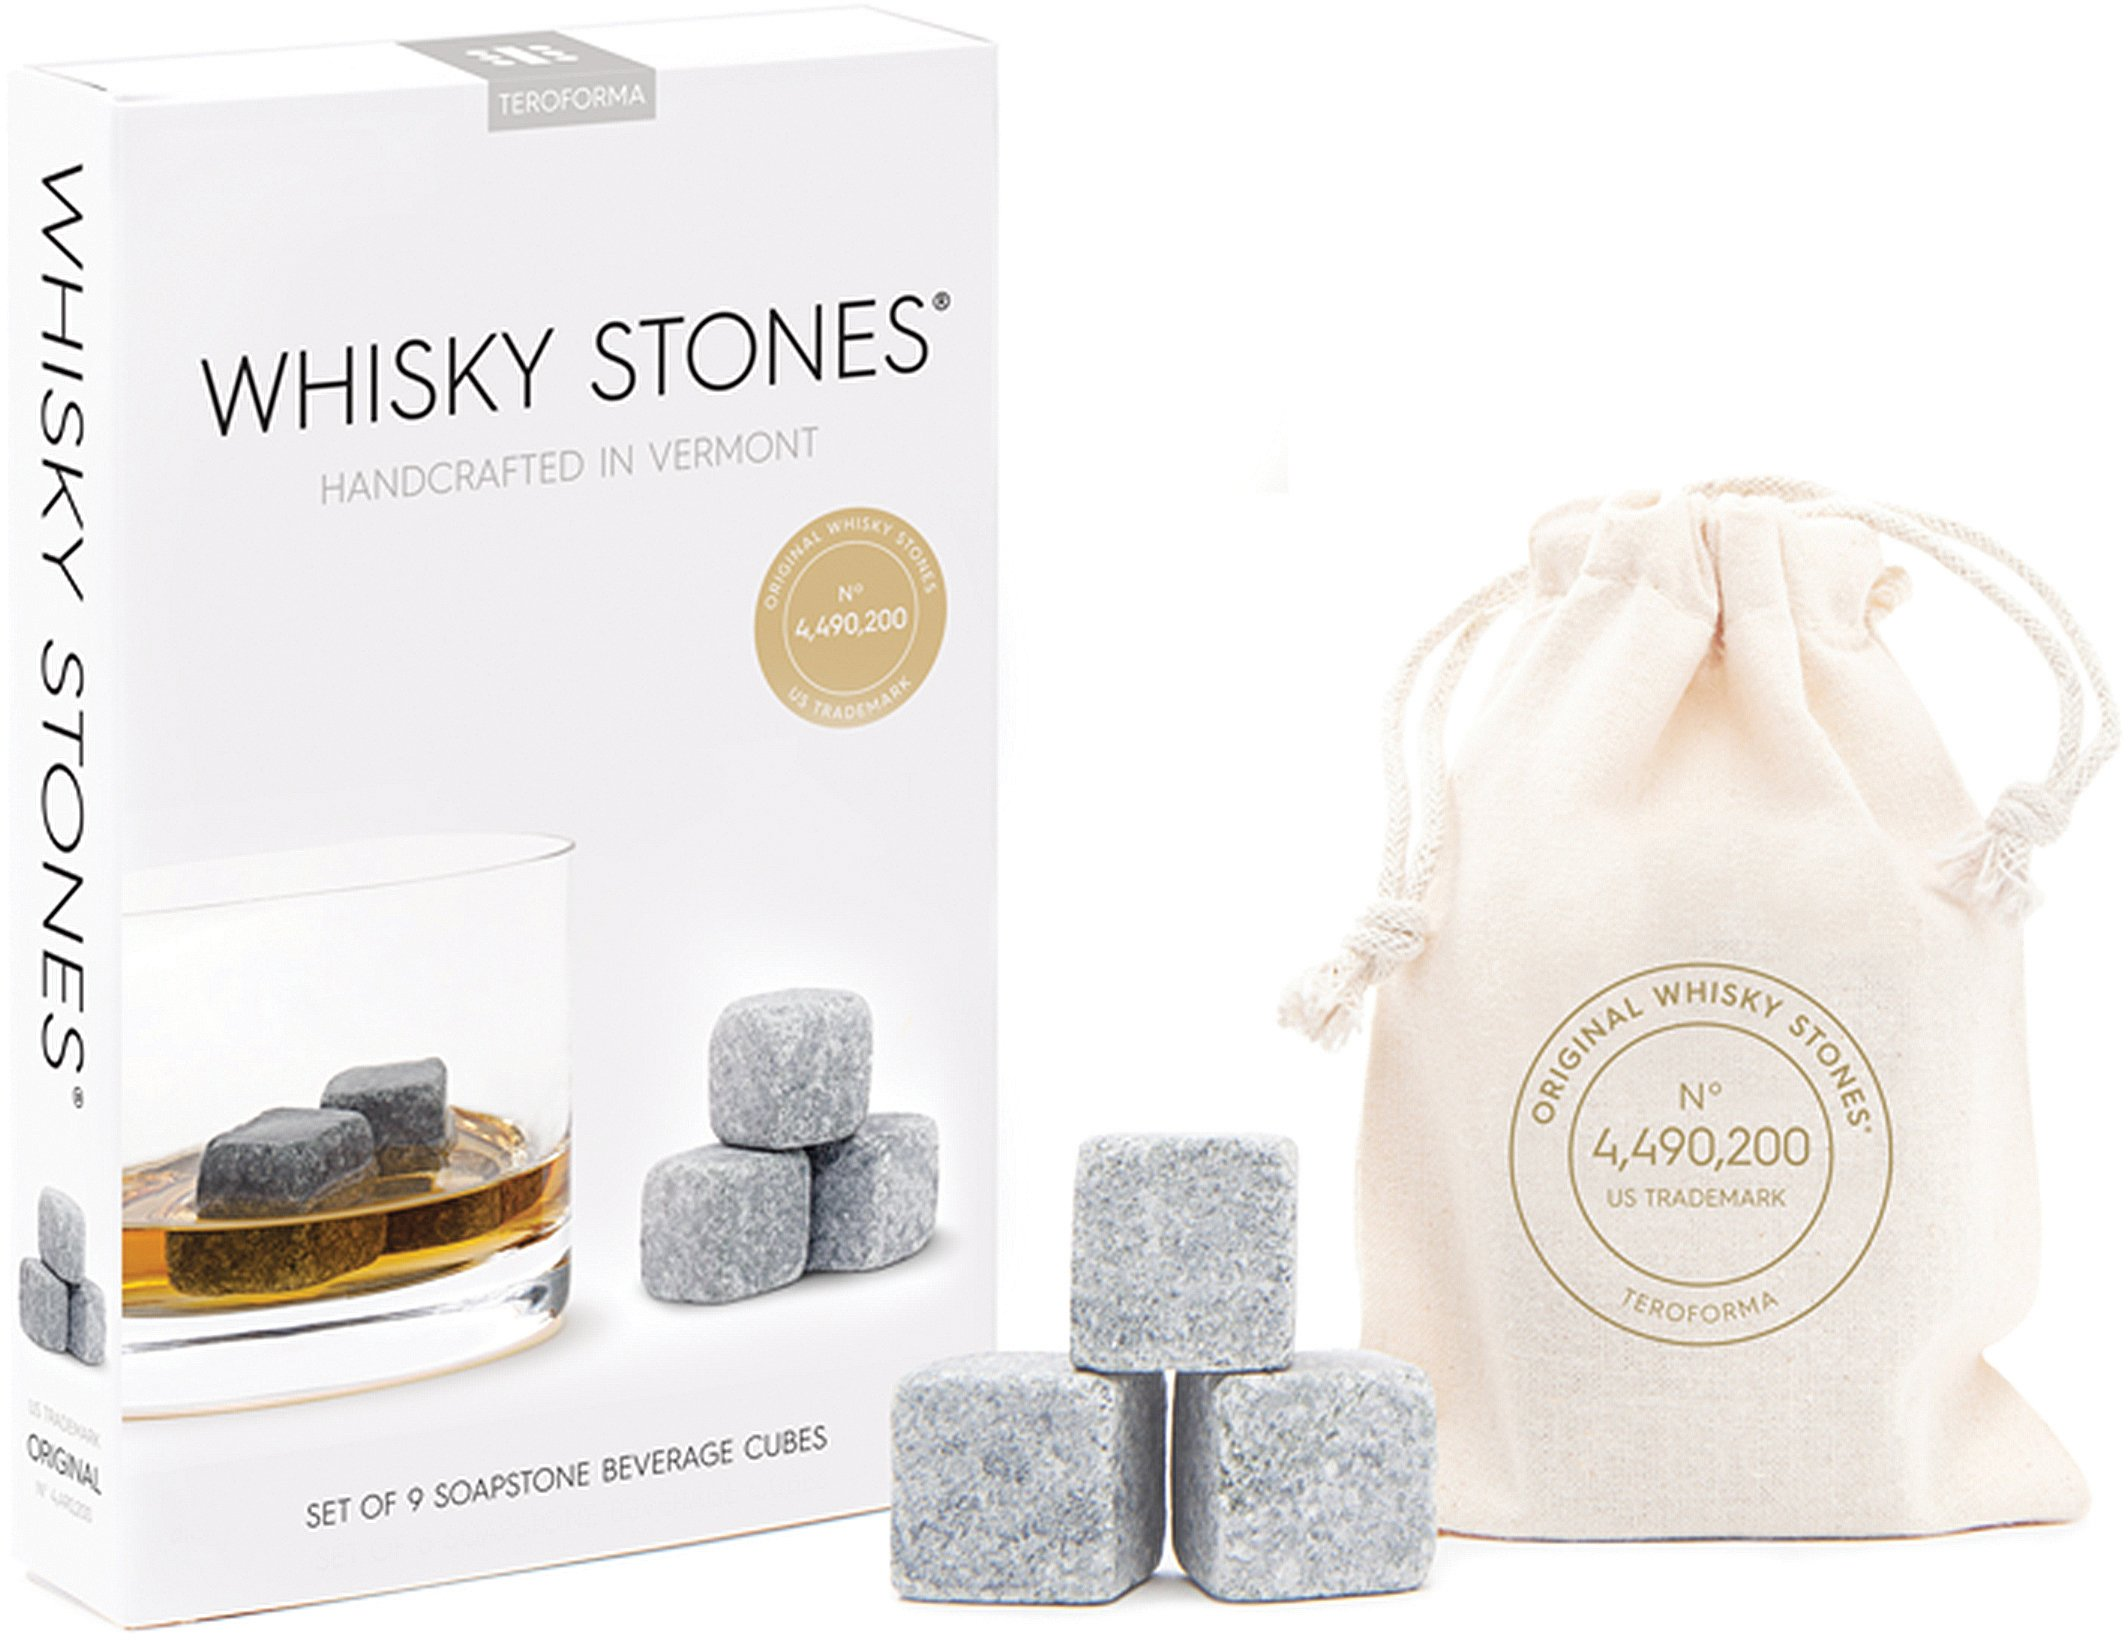 Teroforma CLASSIC Whisky Stones - Handcrafted Soapstone Beverage Chilling Cubes, Set of 9 (Natural, 0.88'')